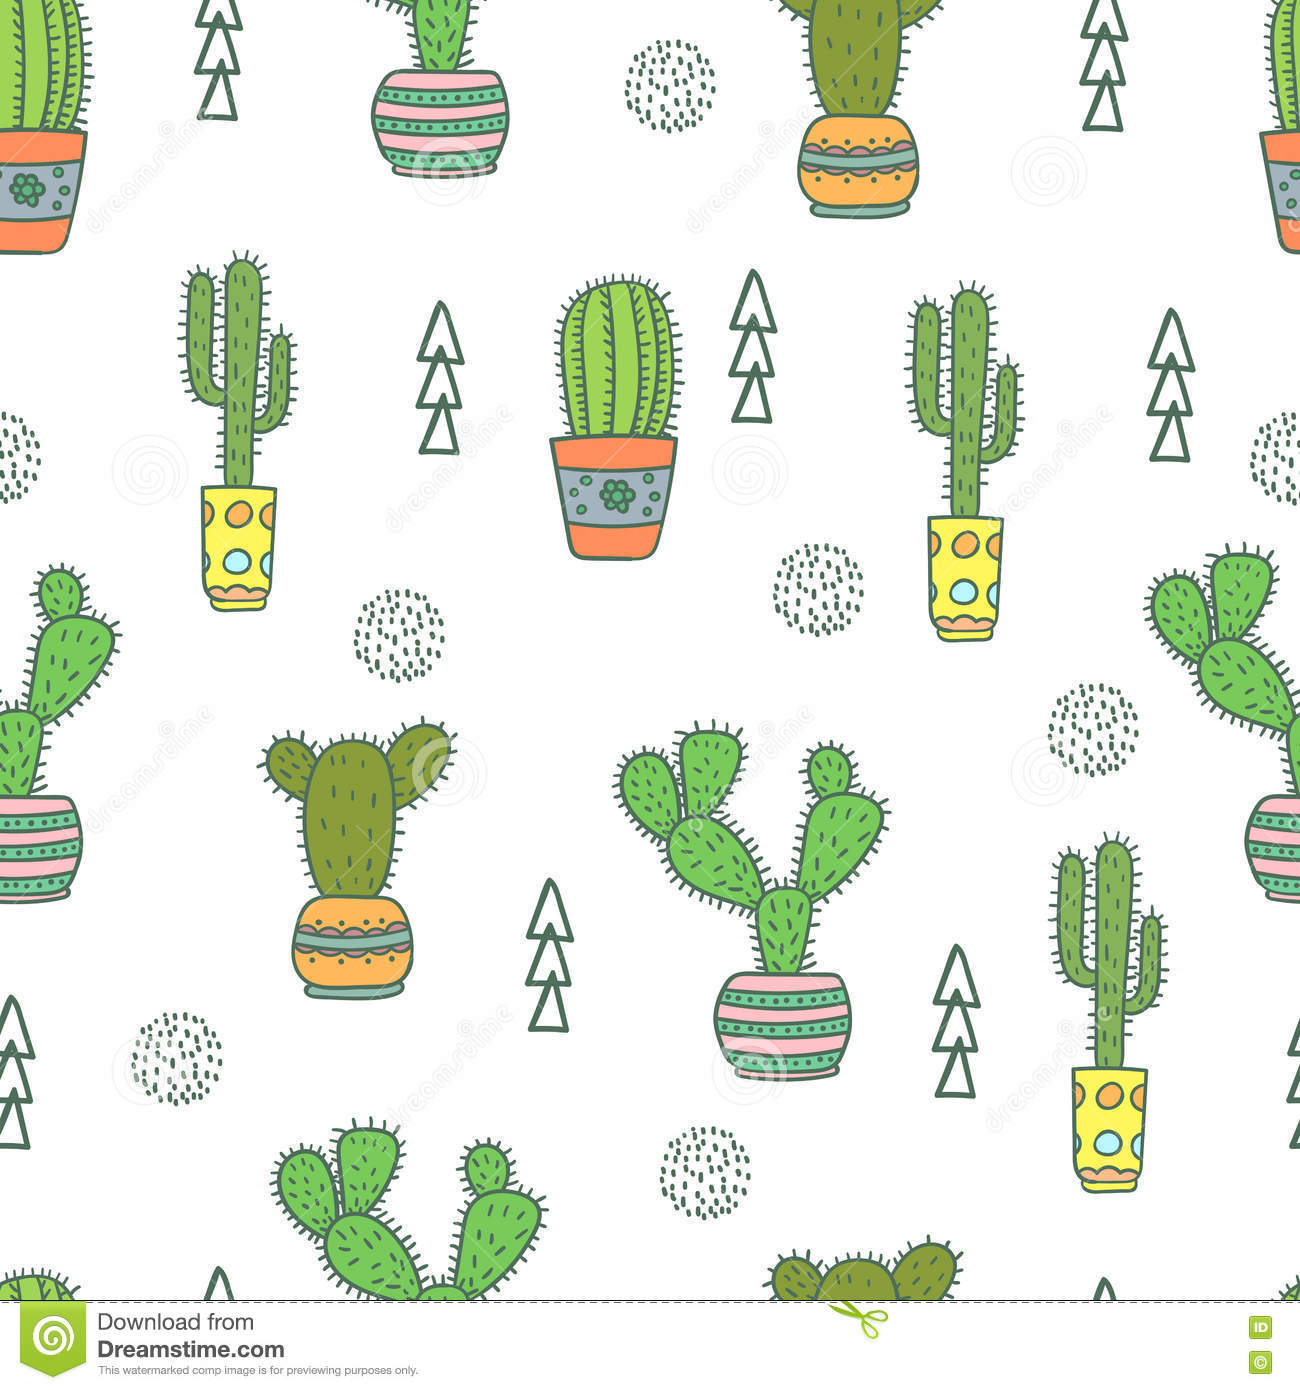 Cactus Seamless Pattern. Doodle Colorful Flowers In Pots